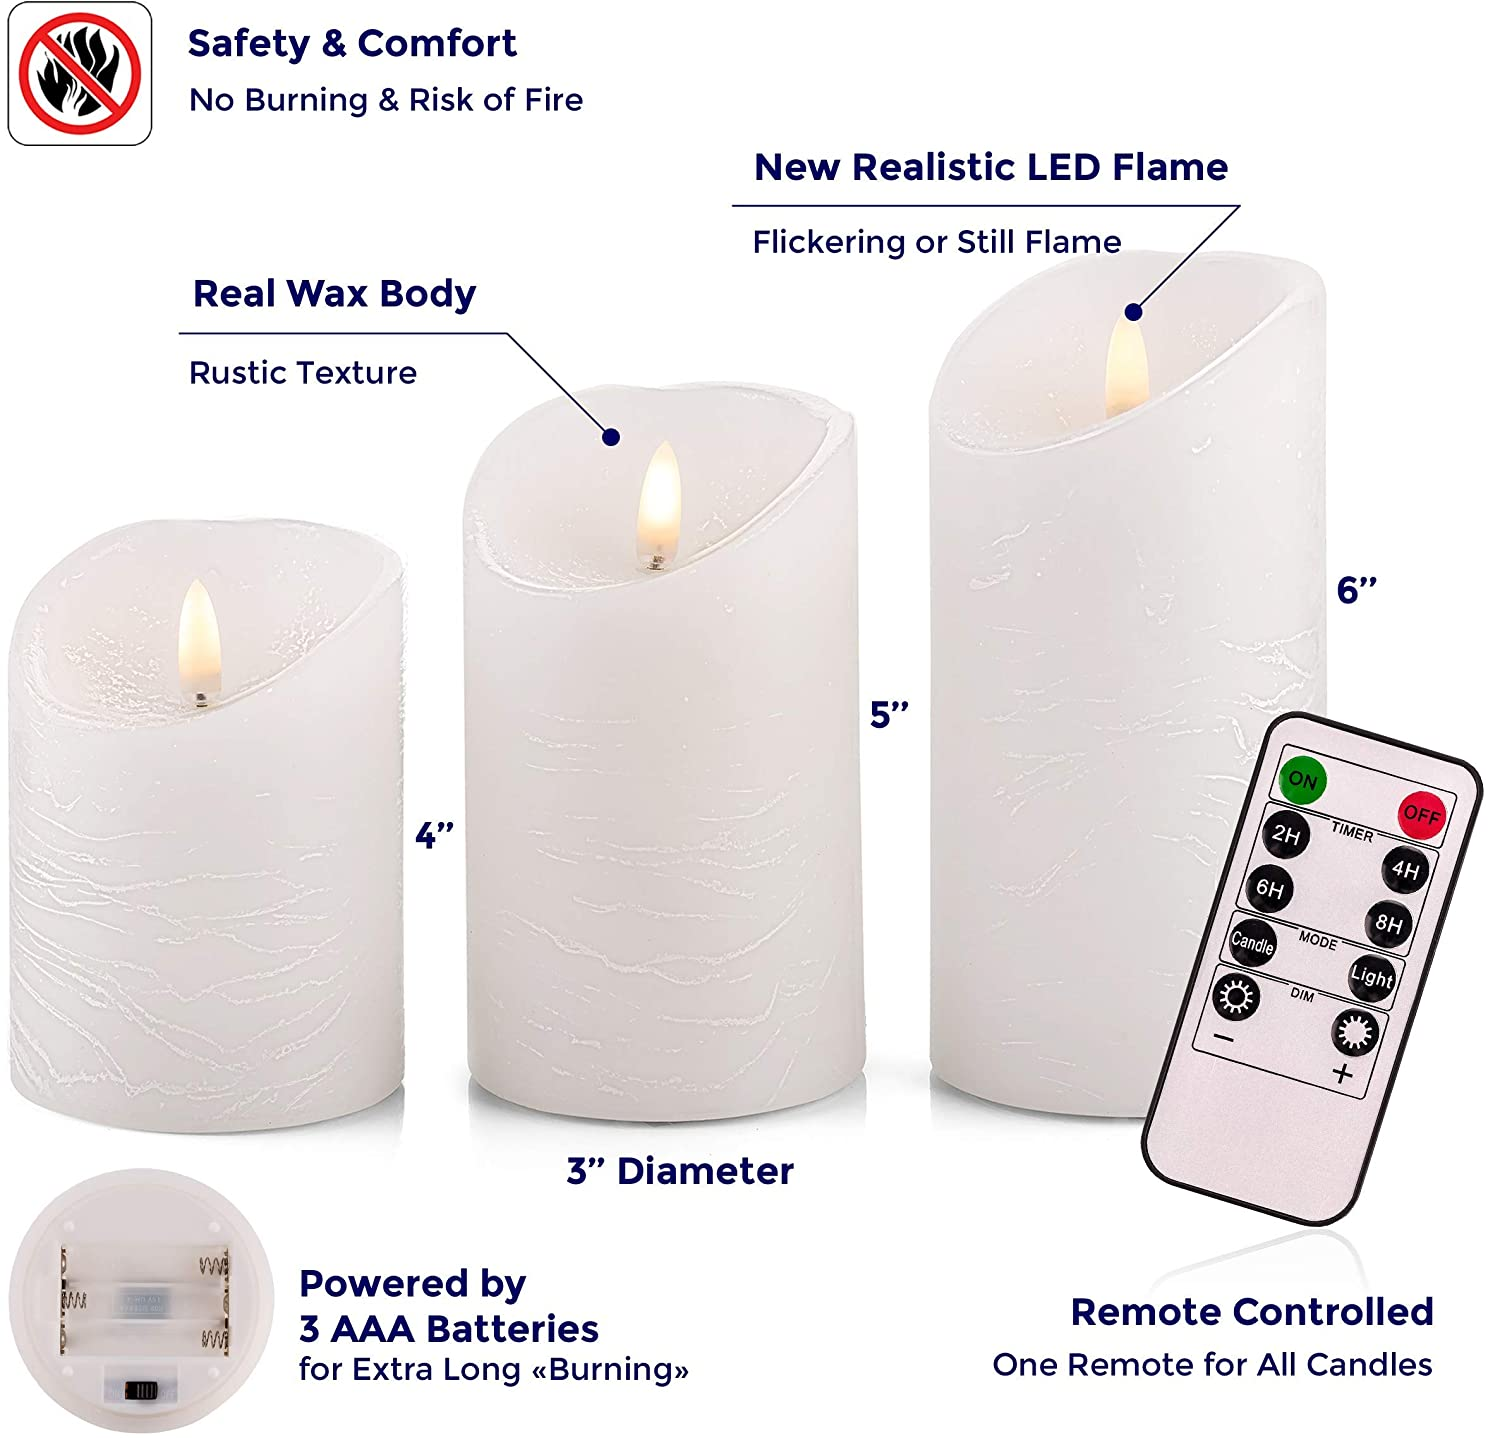 Venta Set of 3 Realistic Flameless Ivory LED Candles with Remote Control 4 5 6 Electric Wickless Pillar Battery Operated Candles with Flickering Flame Timer